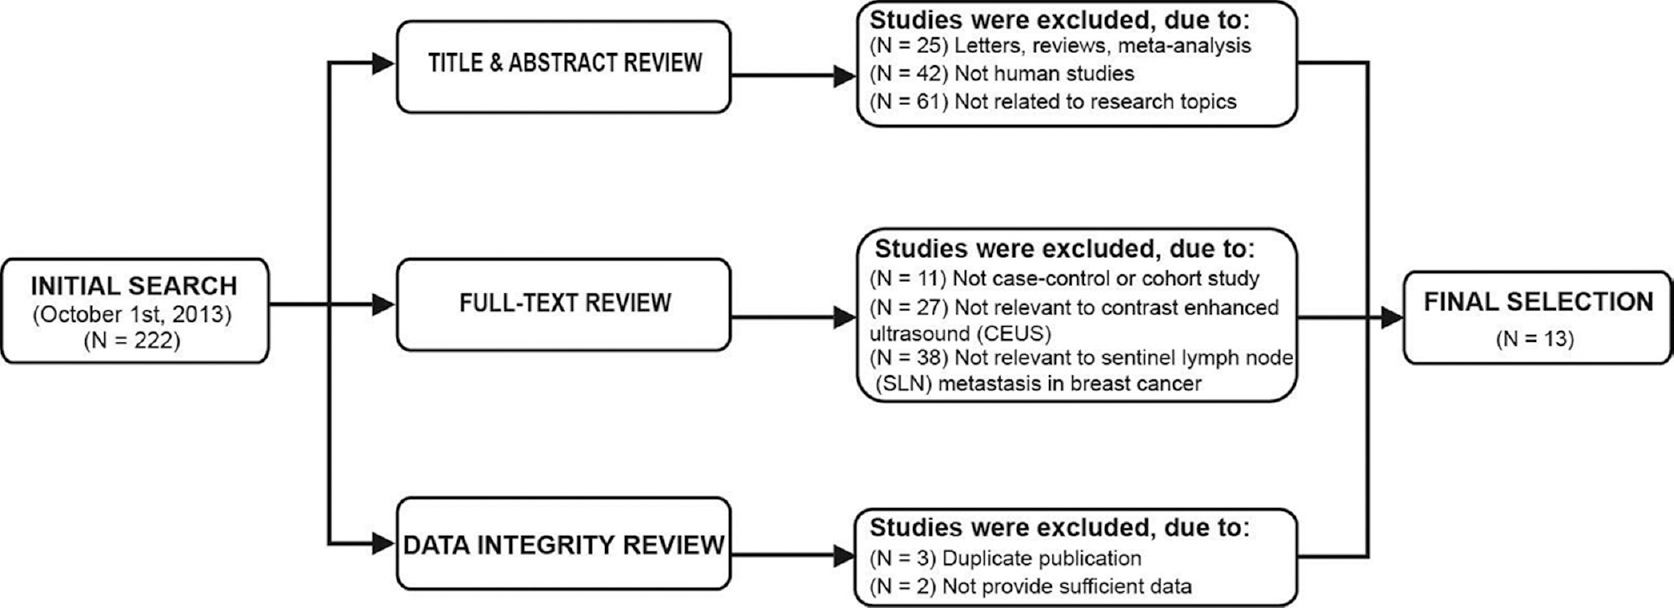 Journal of cancer research and therapeutics table of contents contrast enhanced ultrasonography in qualitative diagnosis of sentinel lymph node metastasis in breast cancer a meta analysis fandeluxe Gallery